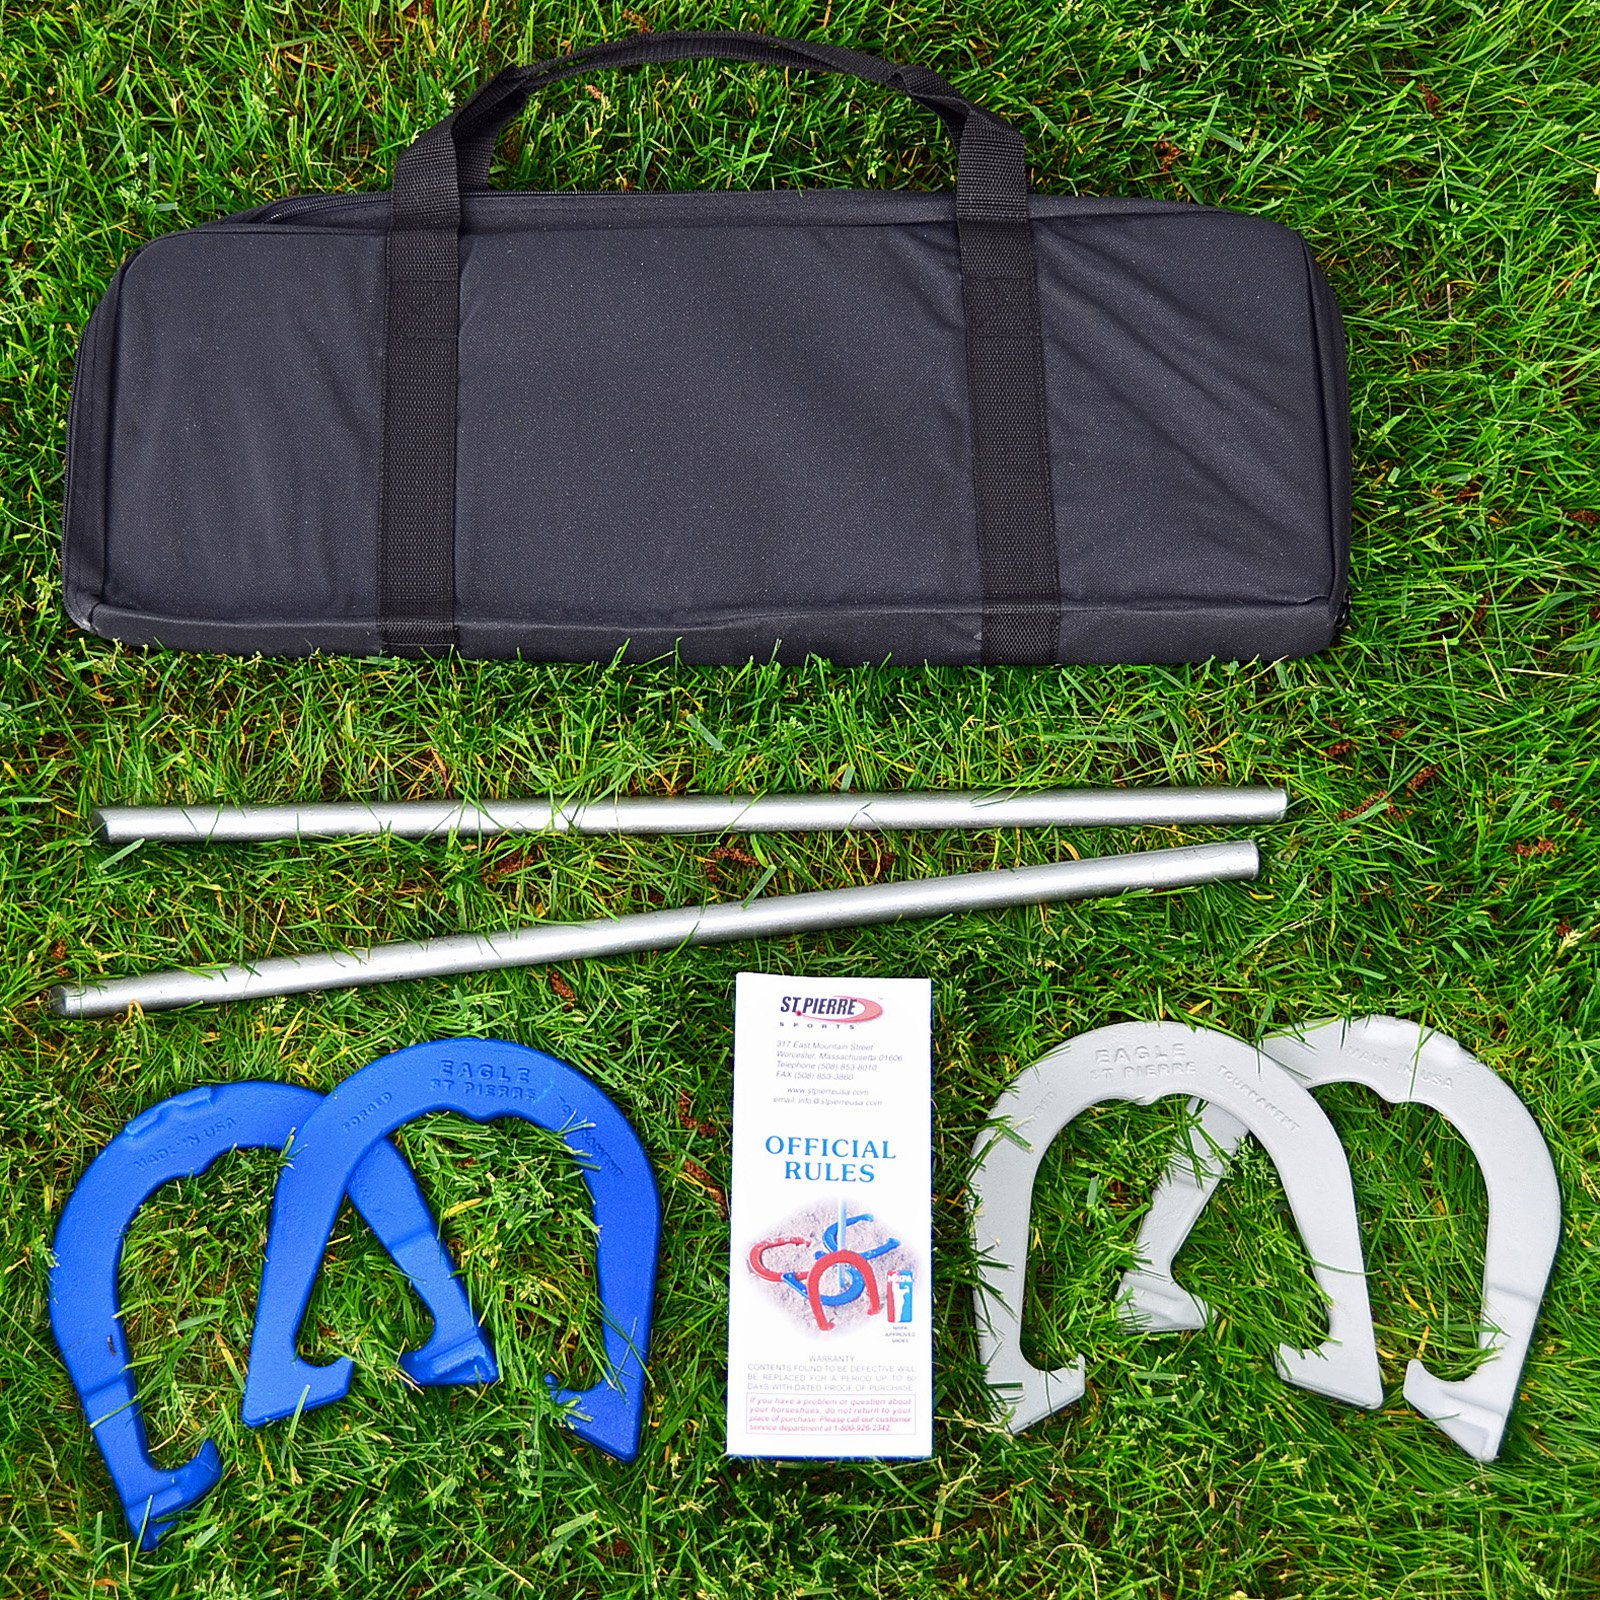 St. Pierre Eagle Tournament Horseshoe Outfit with Nylon Bag by St. Pierre Sports